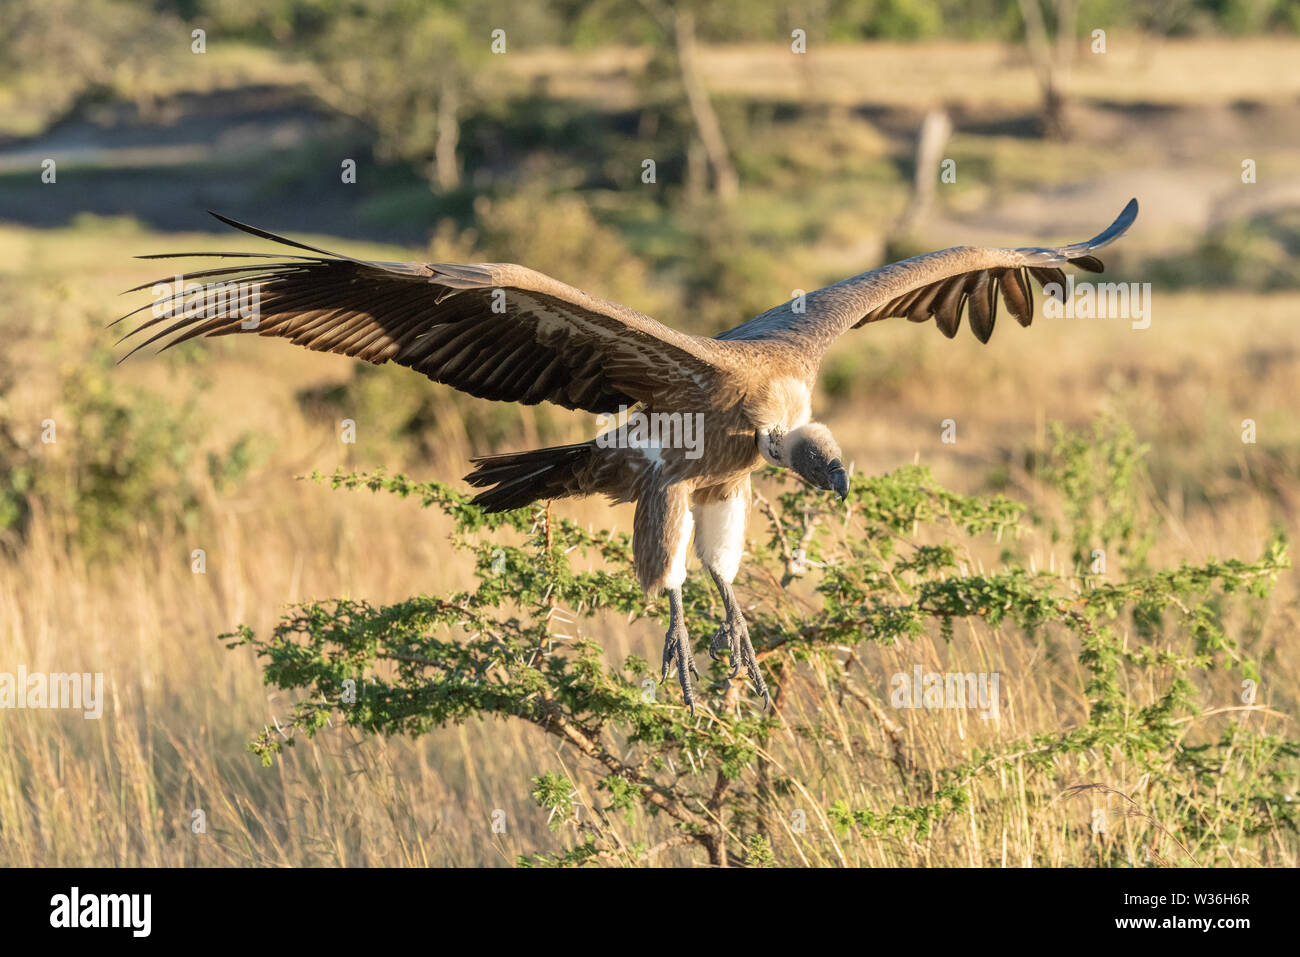 African white-backed vulture comes in for landing - Stock Image